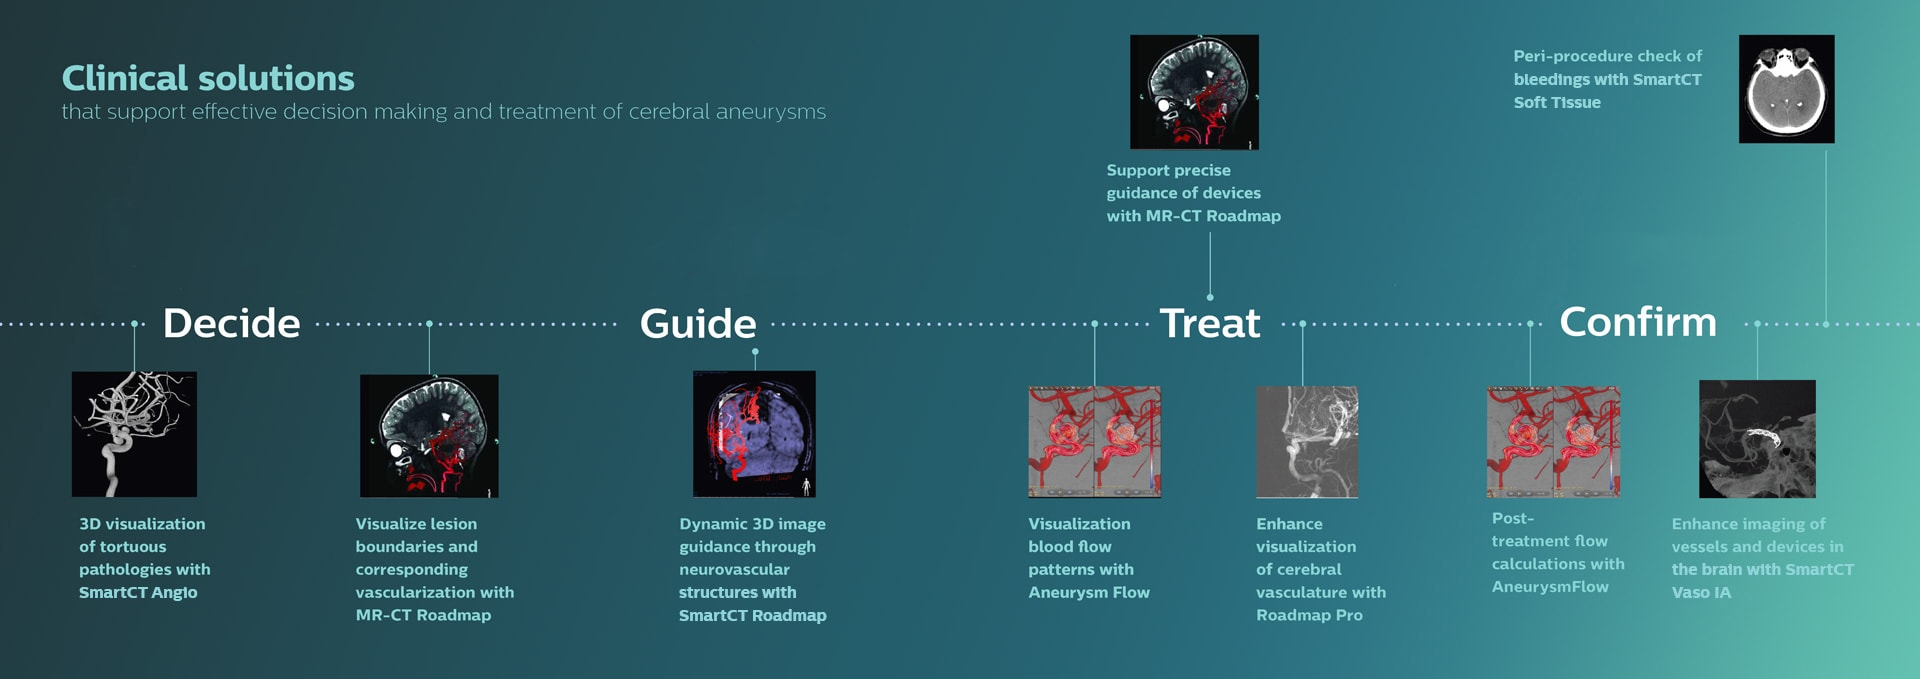 Clinical solutions for cerebral aneurysms download image